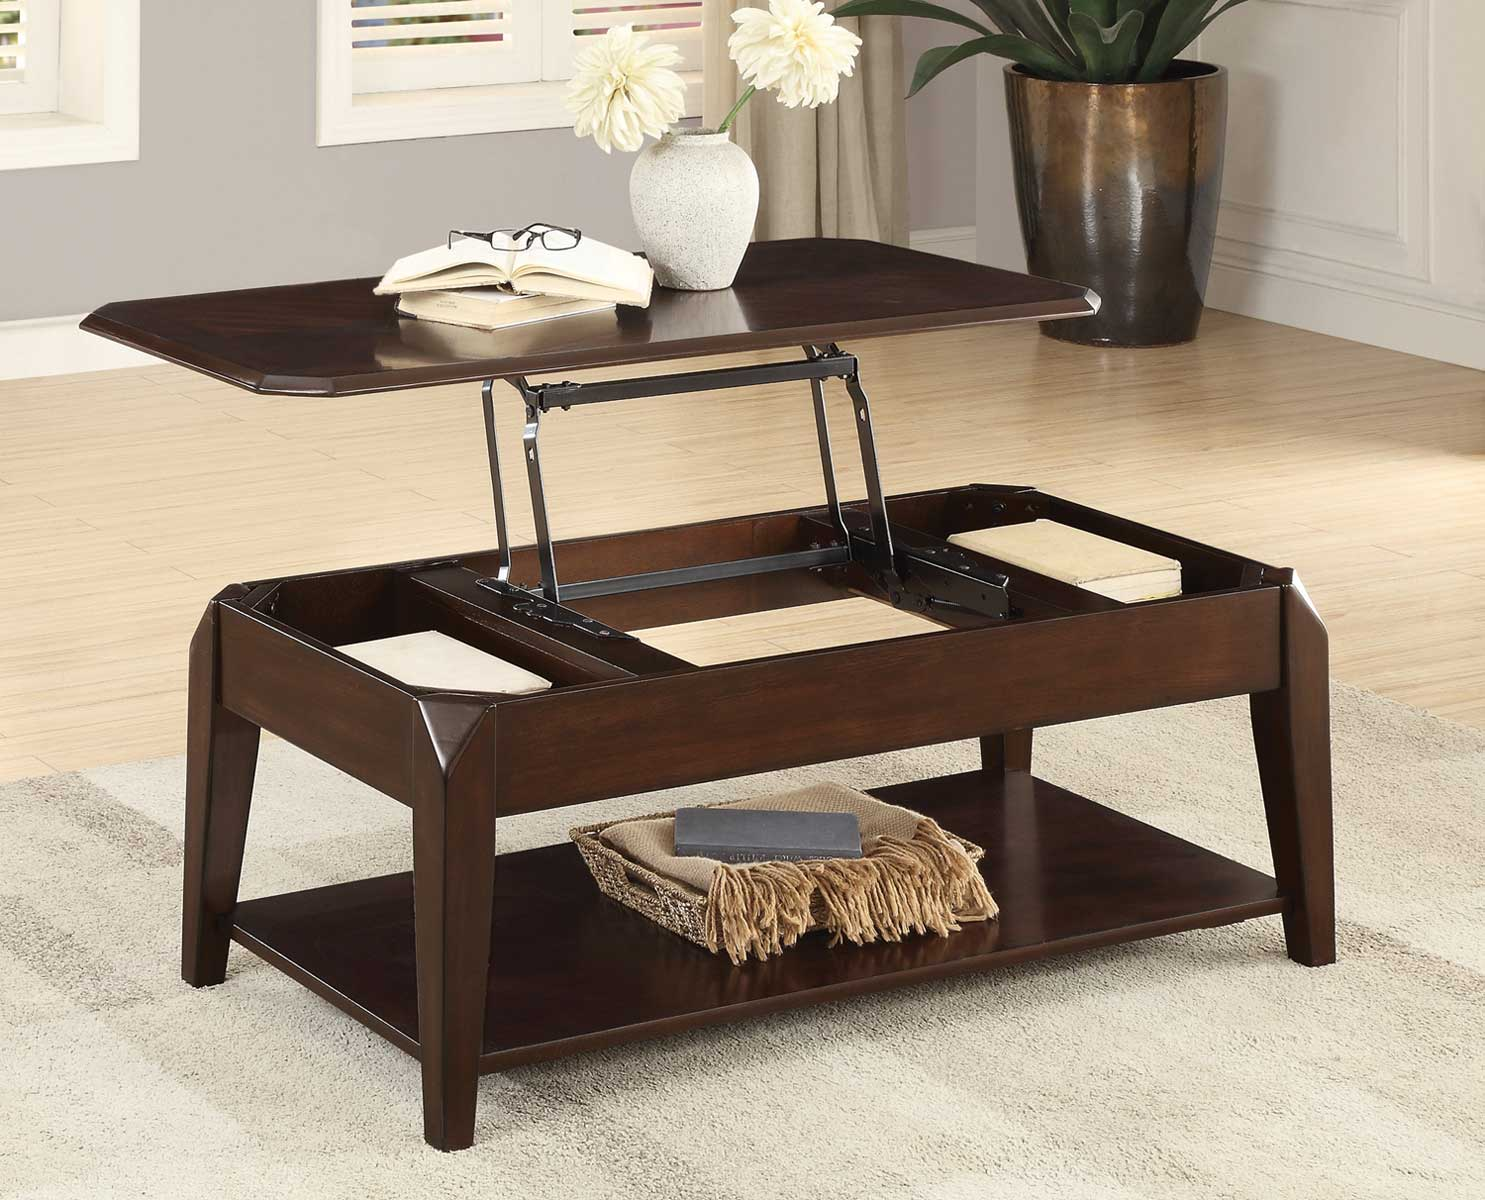 Homelegance Sikeston Cocktail Table with Lift Top on Casters - Warm Cherry